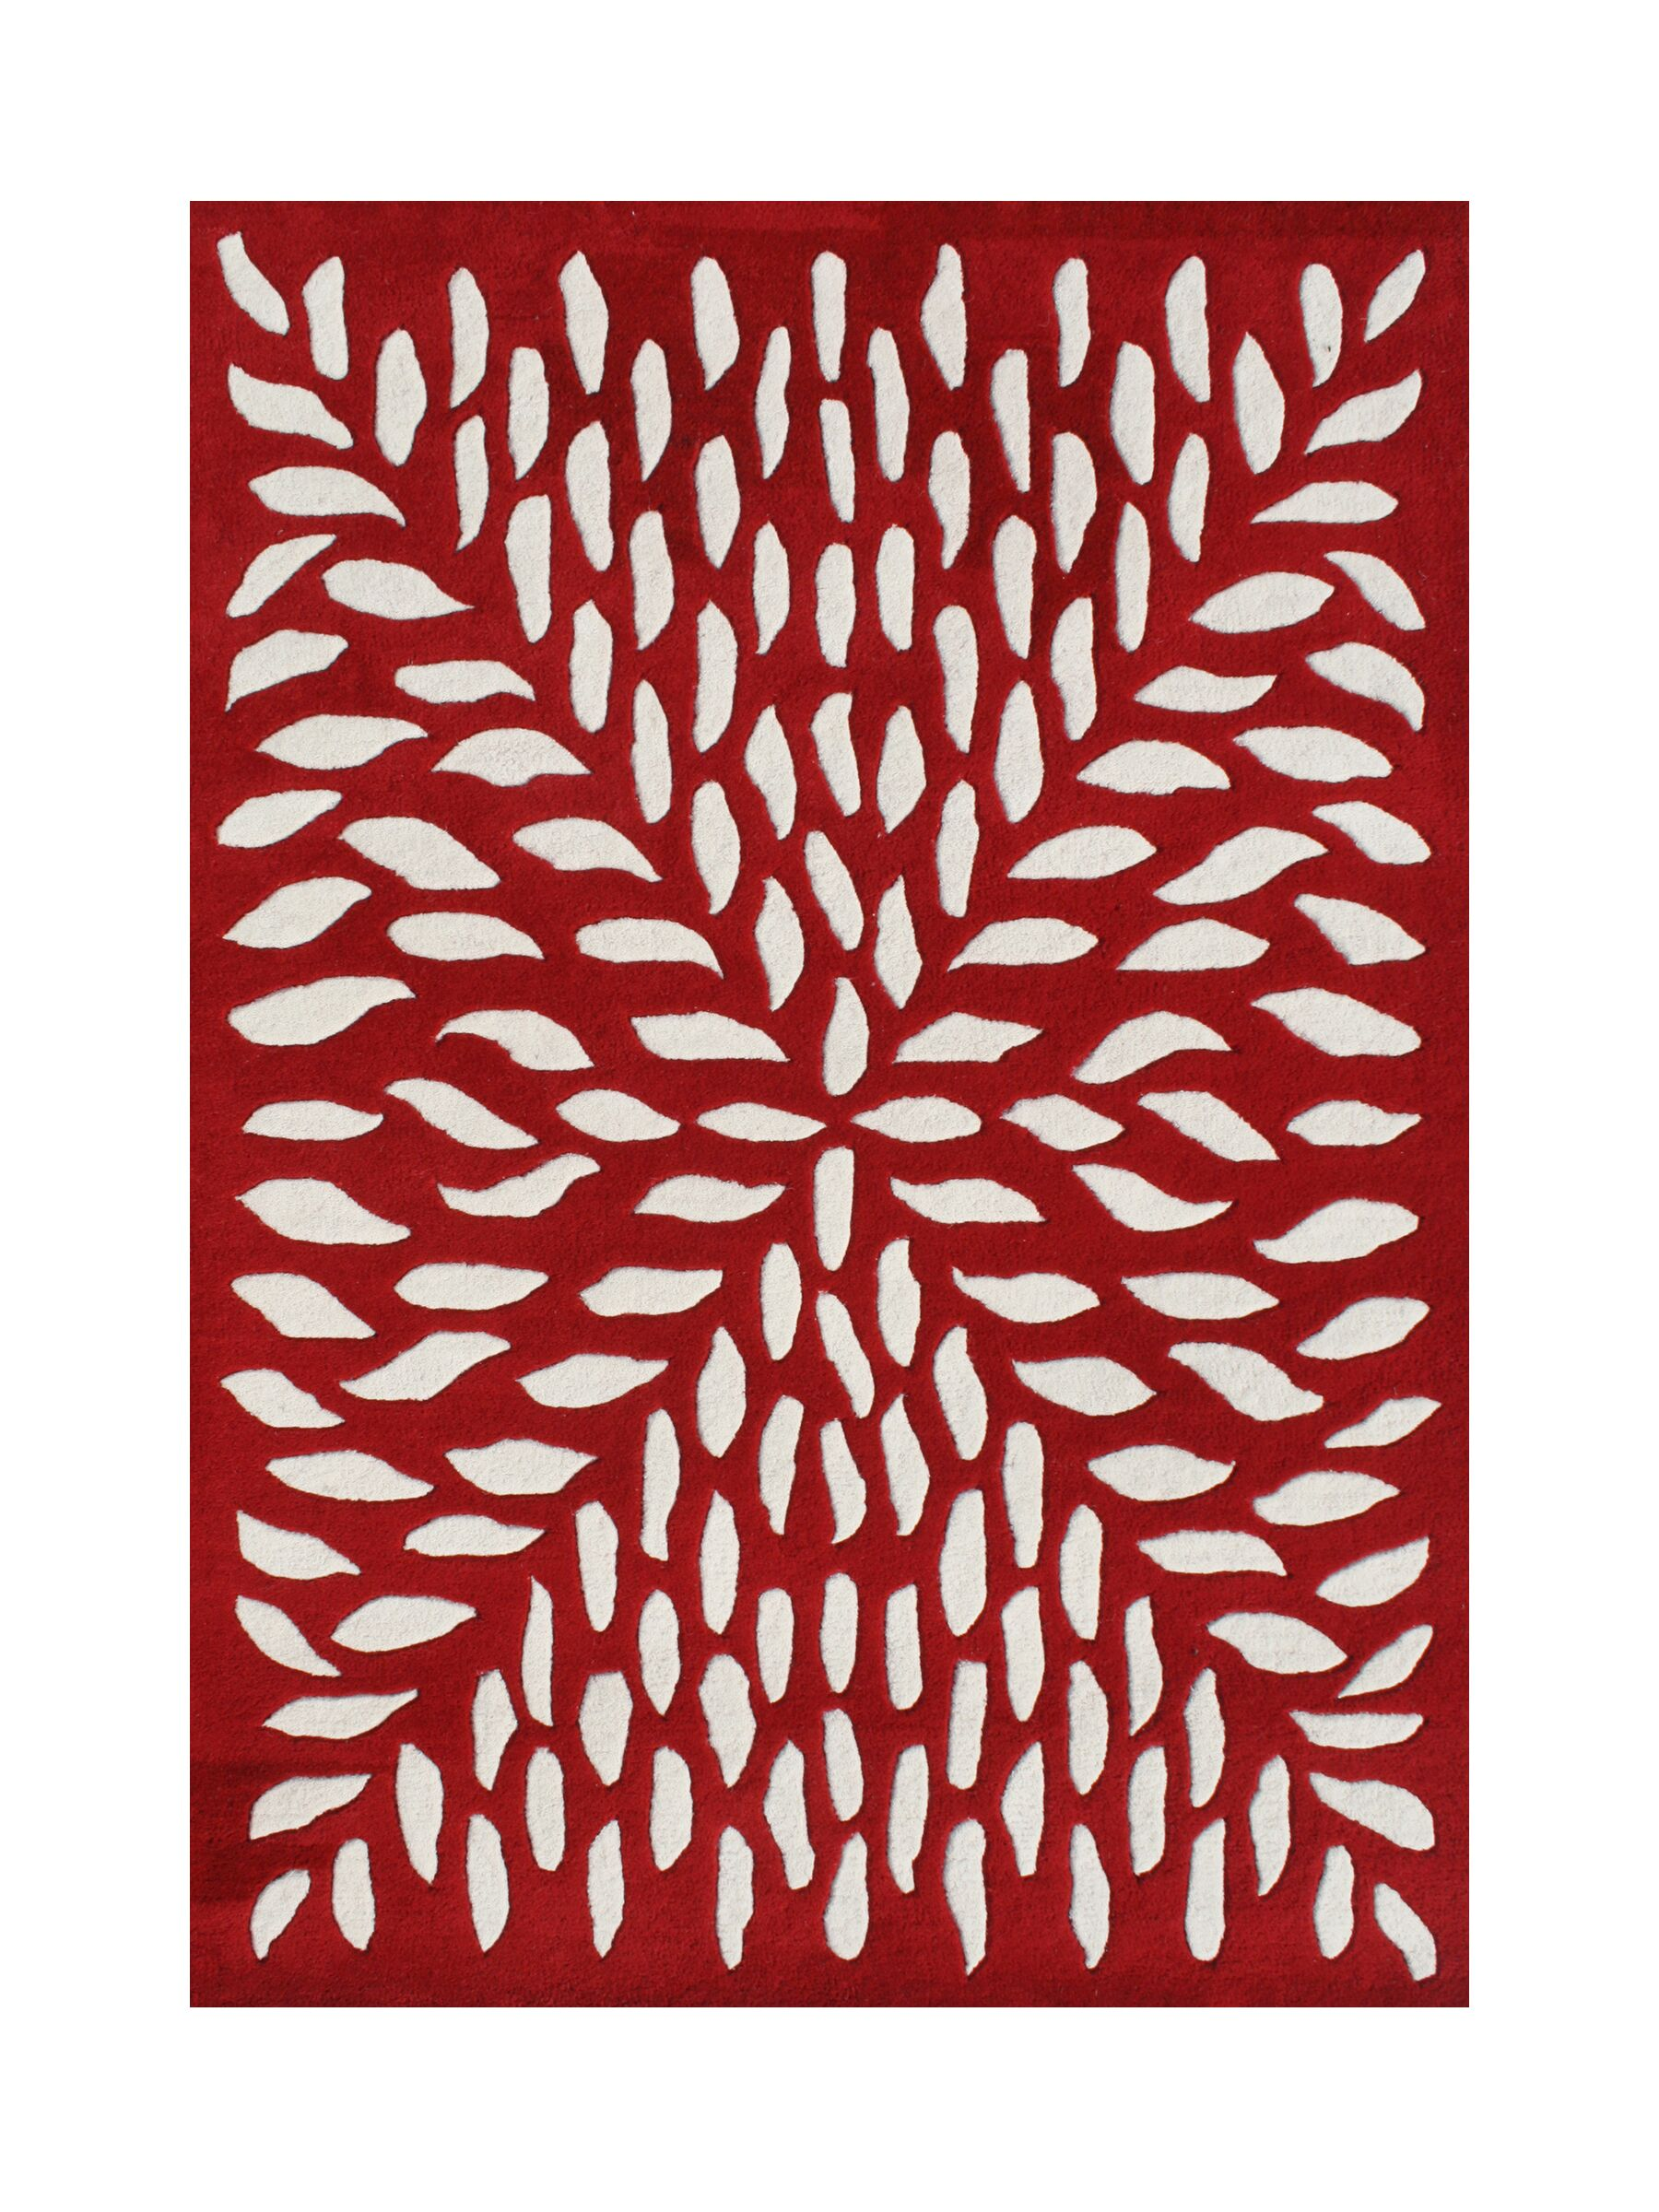 Vernonia Hand-Tufted Red/White Area Rug Rug Size: Rectangle 8' x 10'